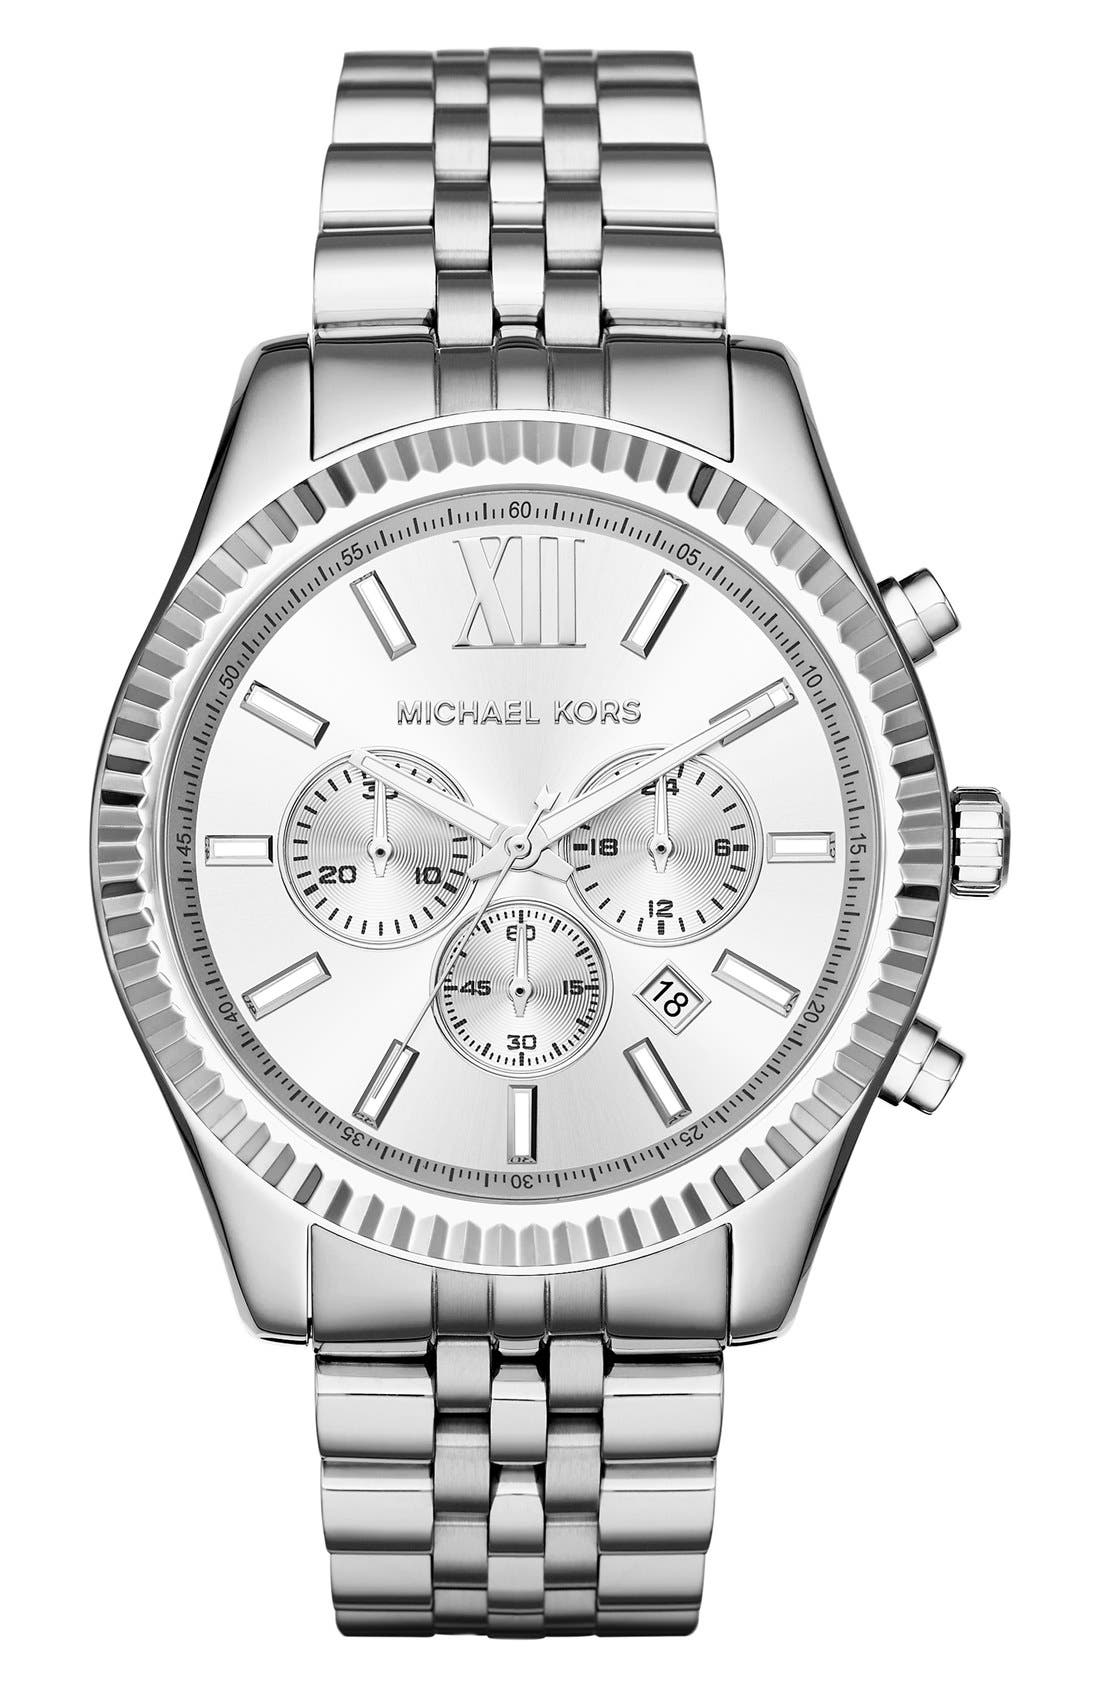 Main Image - Michael Kors 'Lexington' Chronograph Bracelet Watch, 44mm